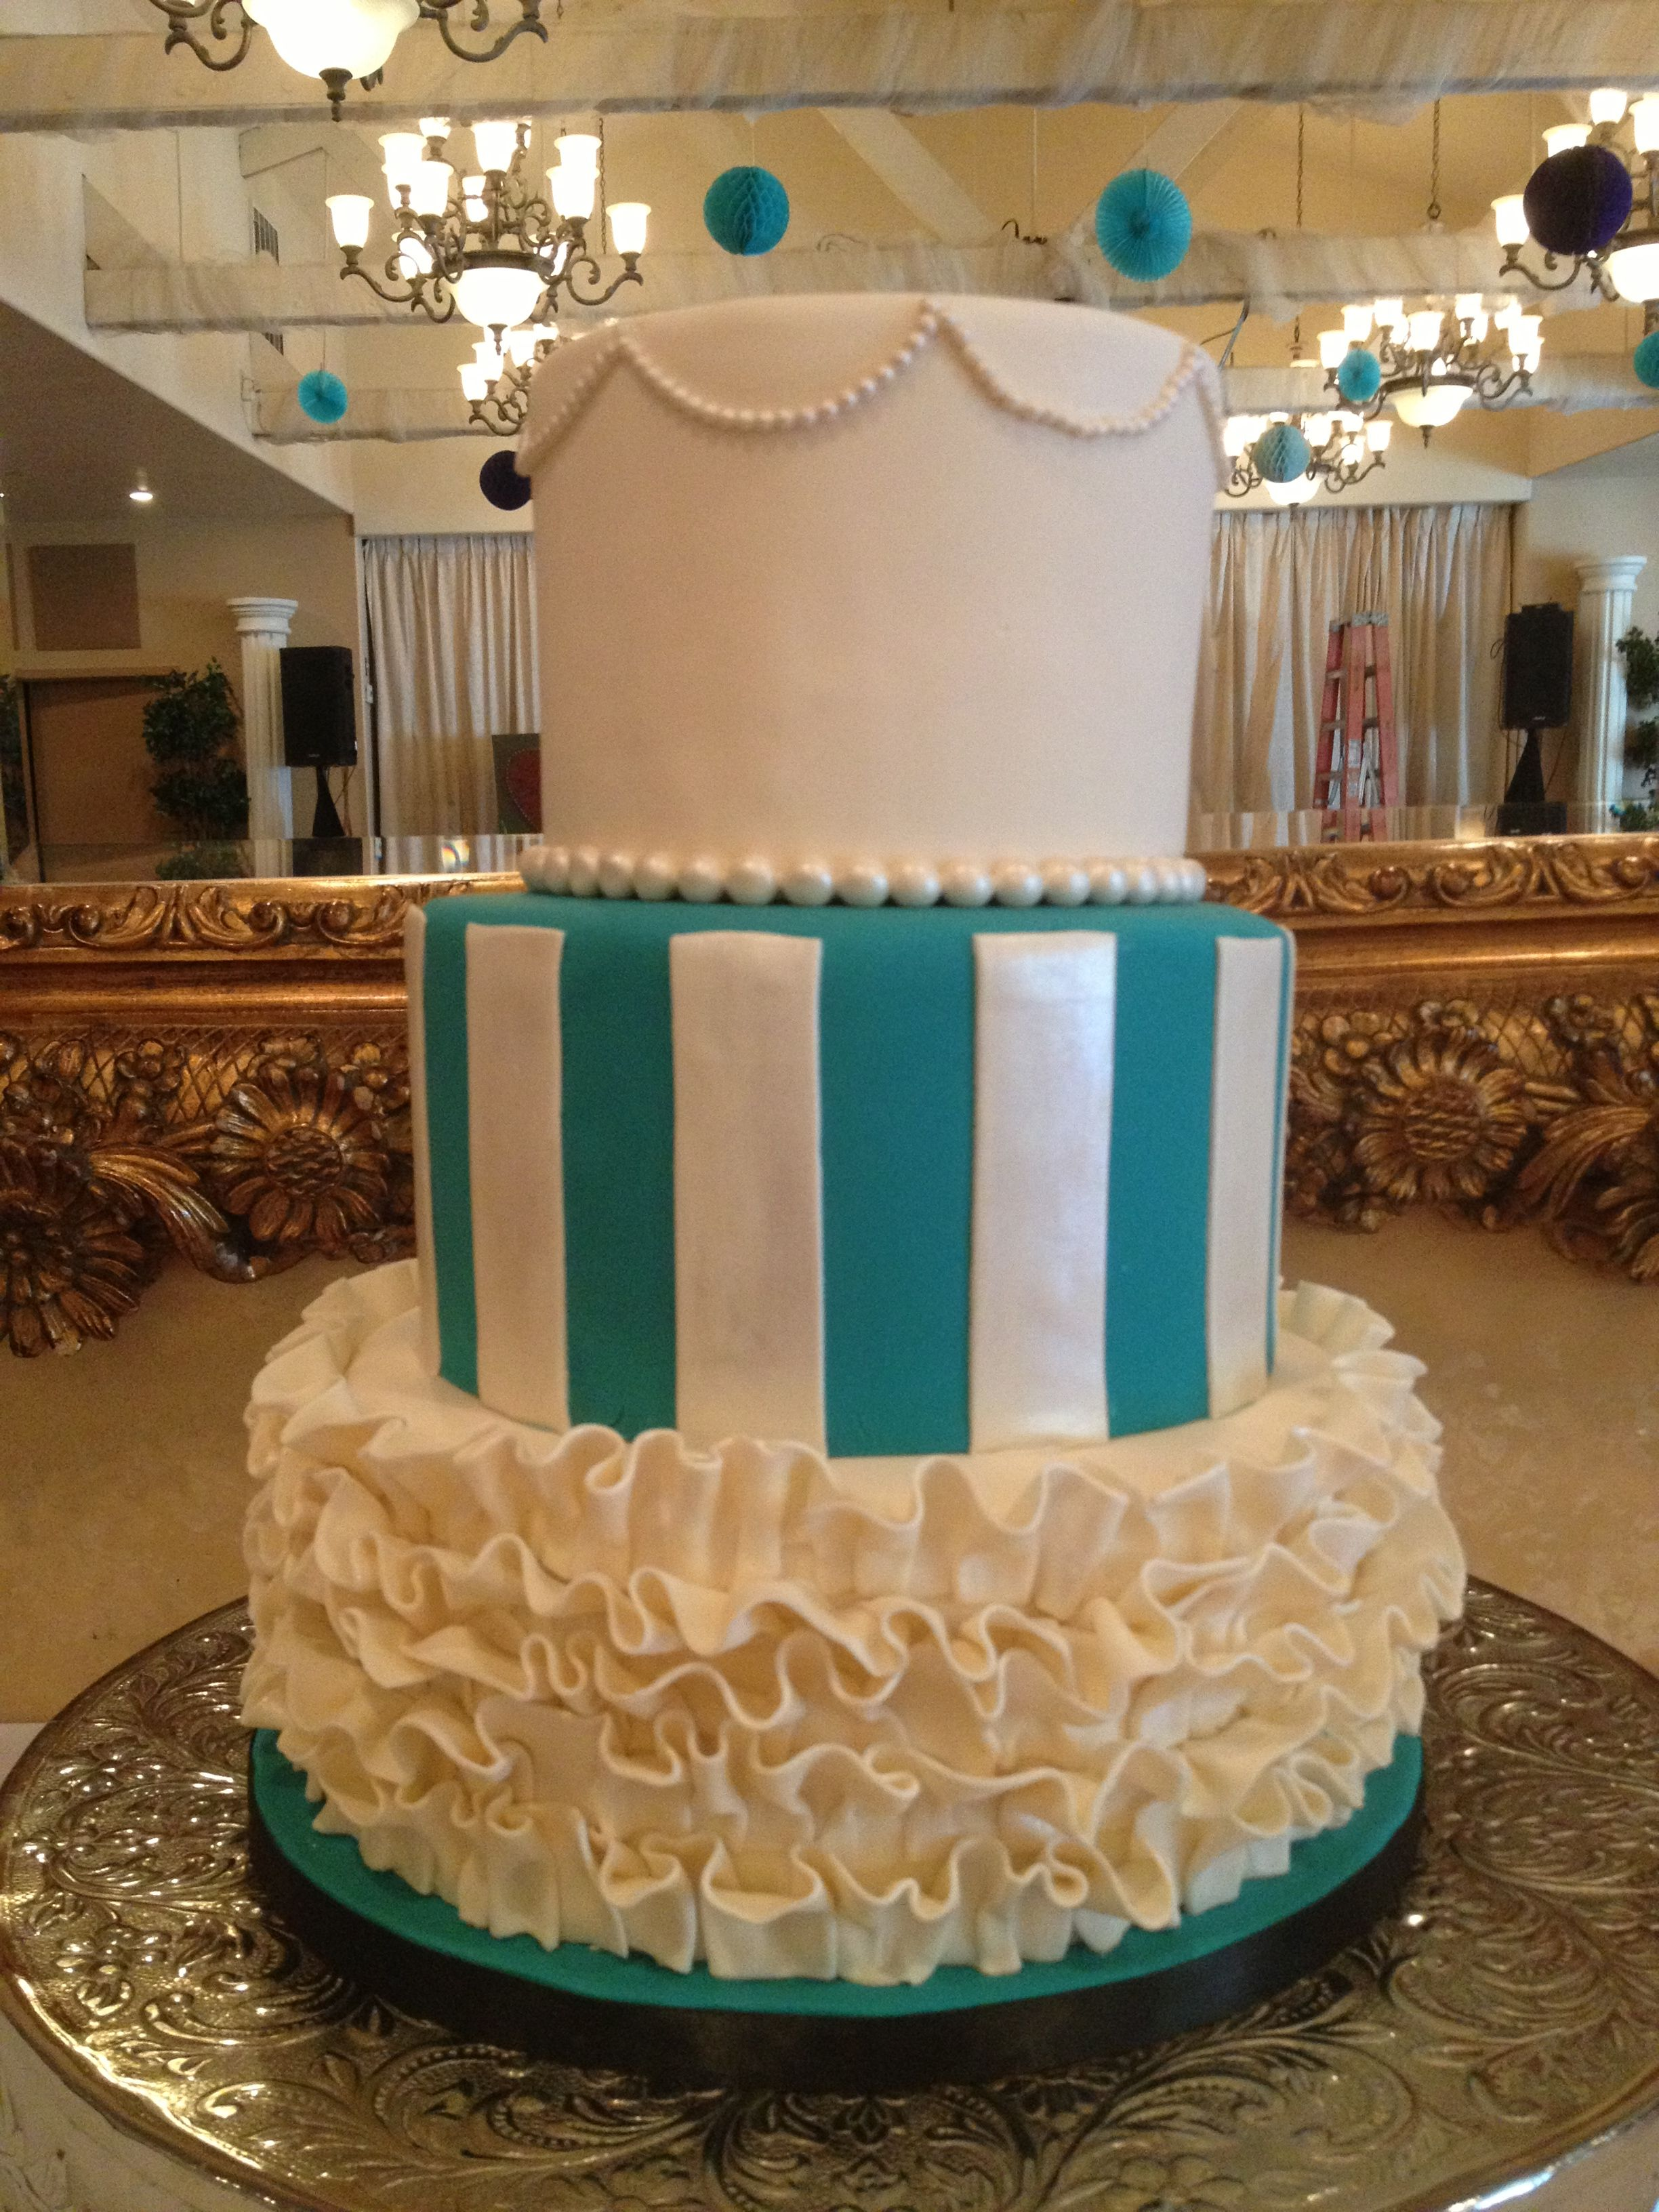 wedding bakeries in sacramento ca%0A Teal and white fondant wedding cakes  Fondant ruffles  stripes and pearls   Blue and